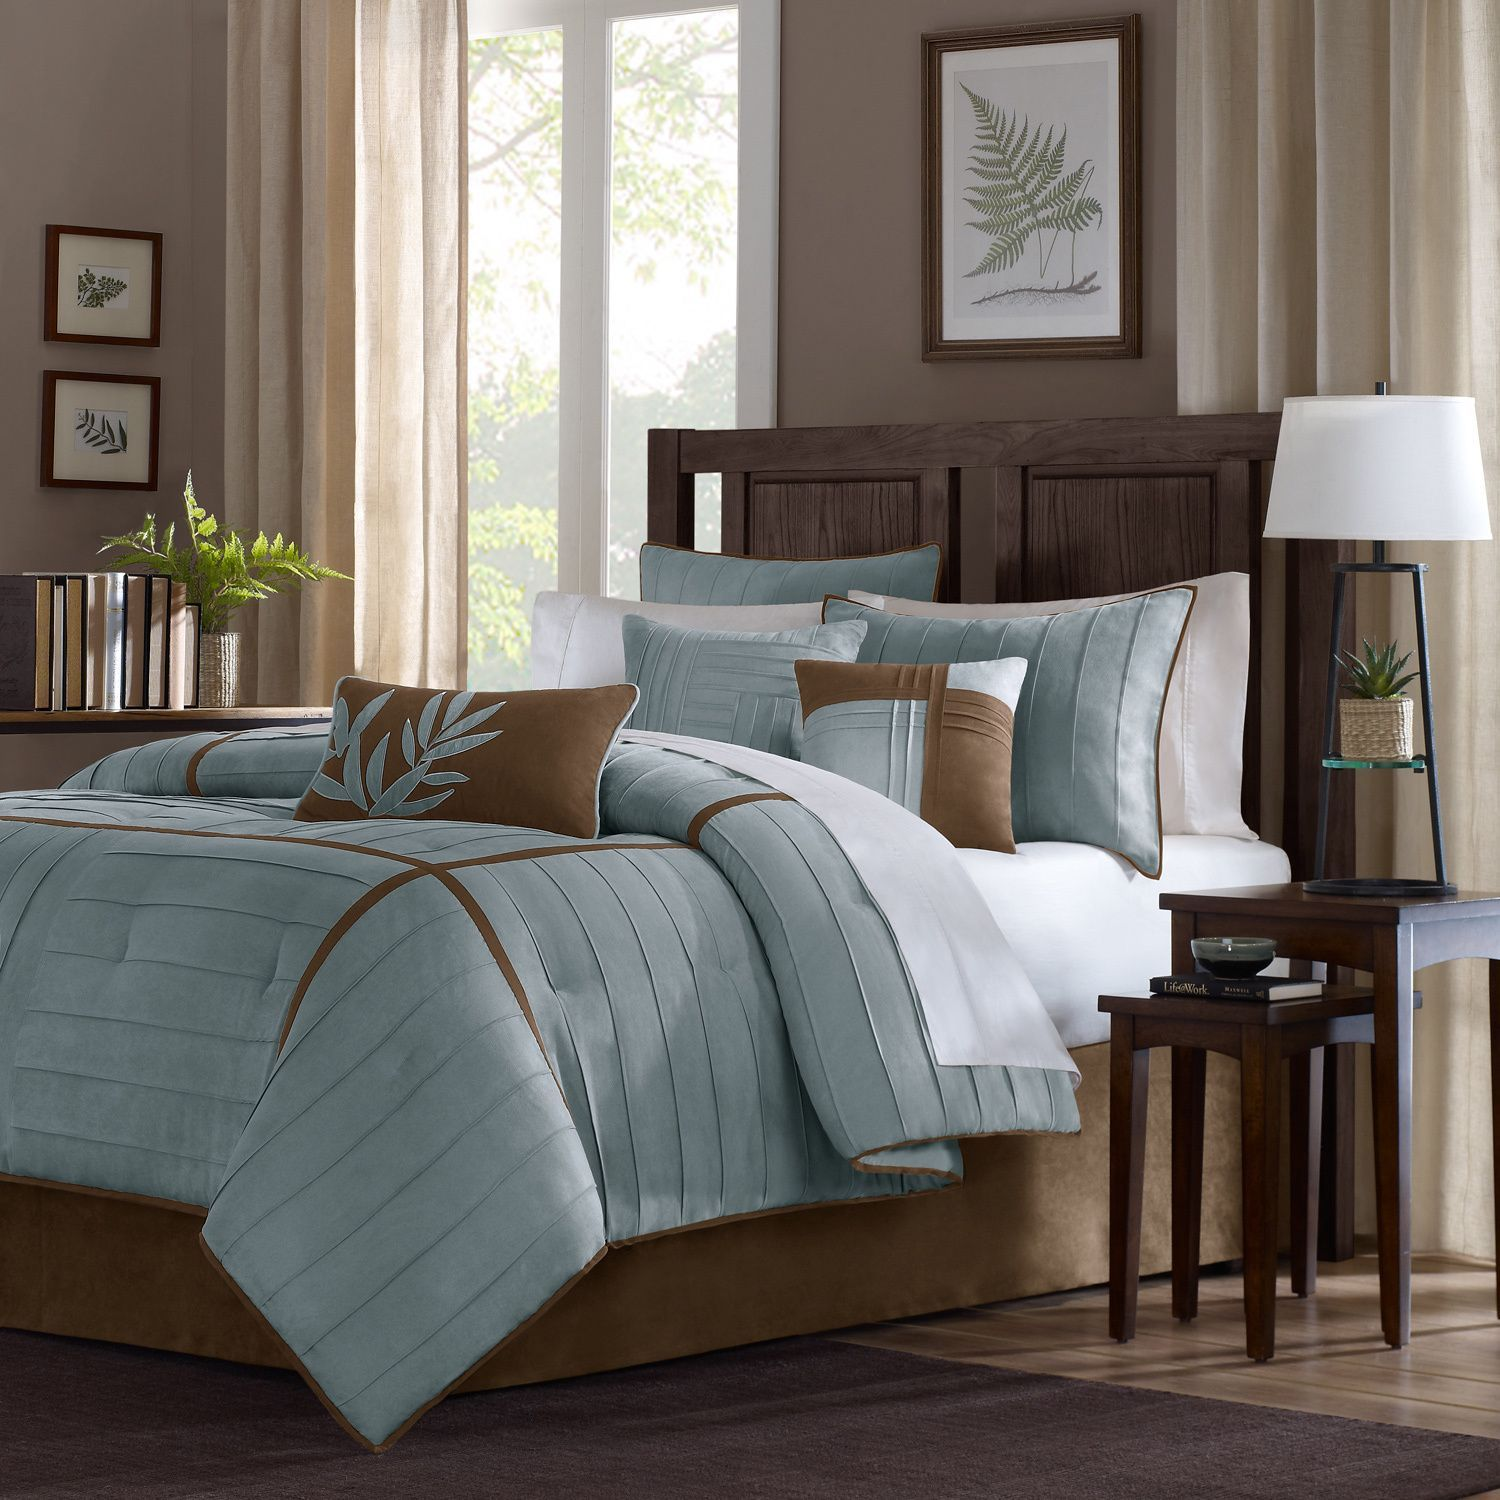 of in bedding suede decor list the purple piece comforter set lush twin jewel best sets exhaustive